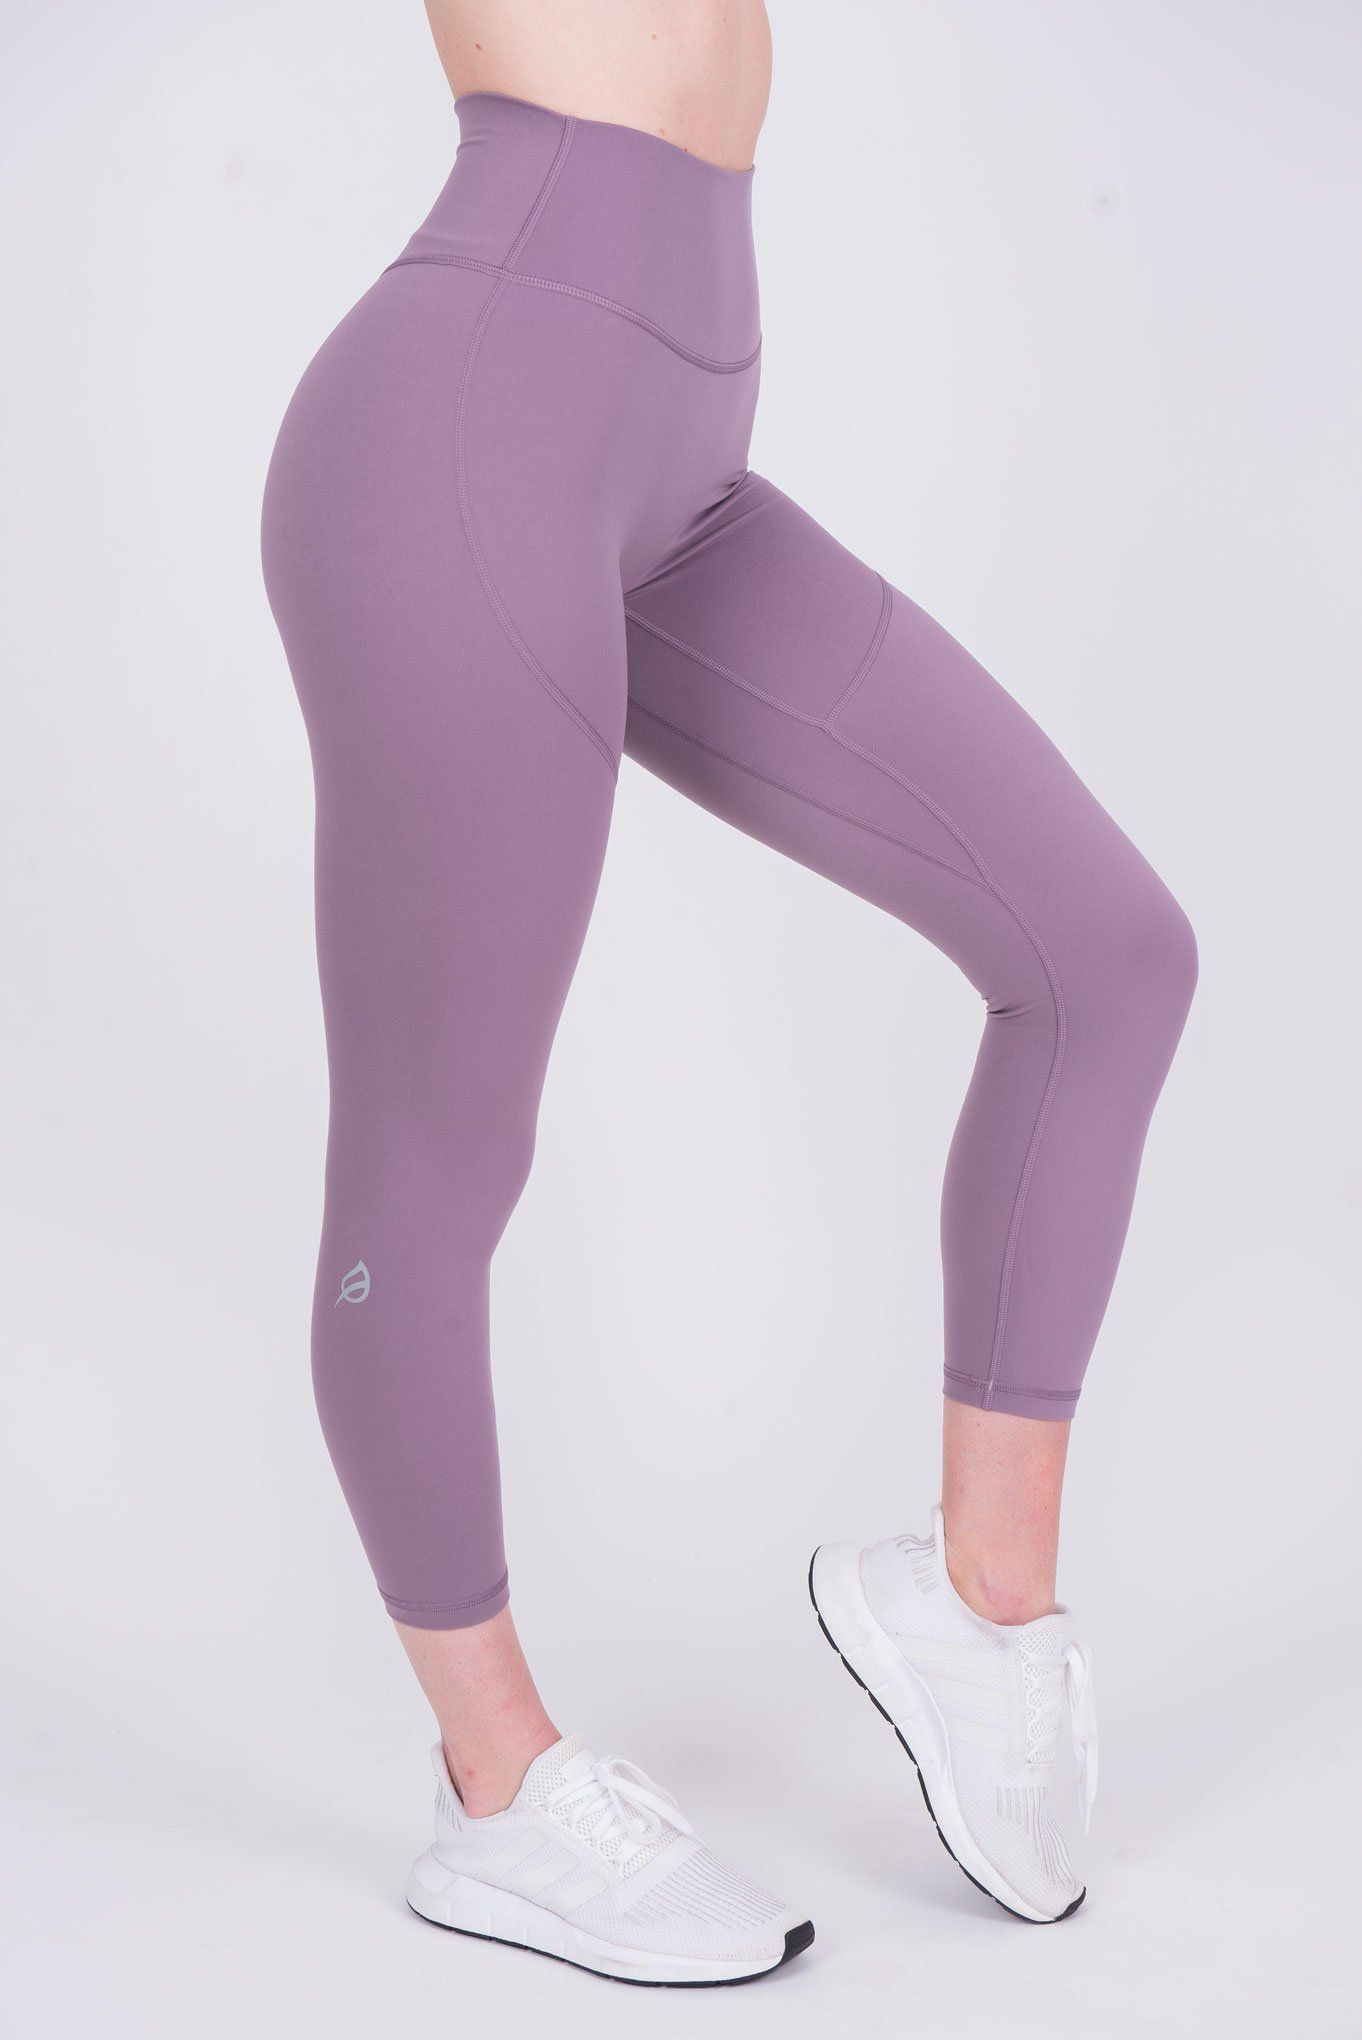 The Shelby Legging 23 Vintage Mauve Stylish Fitness Competition Clothes Check out our slytherin sweatshirt selection for the very best in unique or custom, handmade pieces from our clothing shops. pinterest